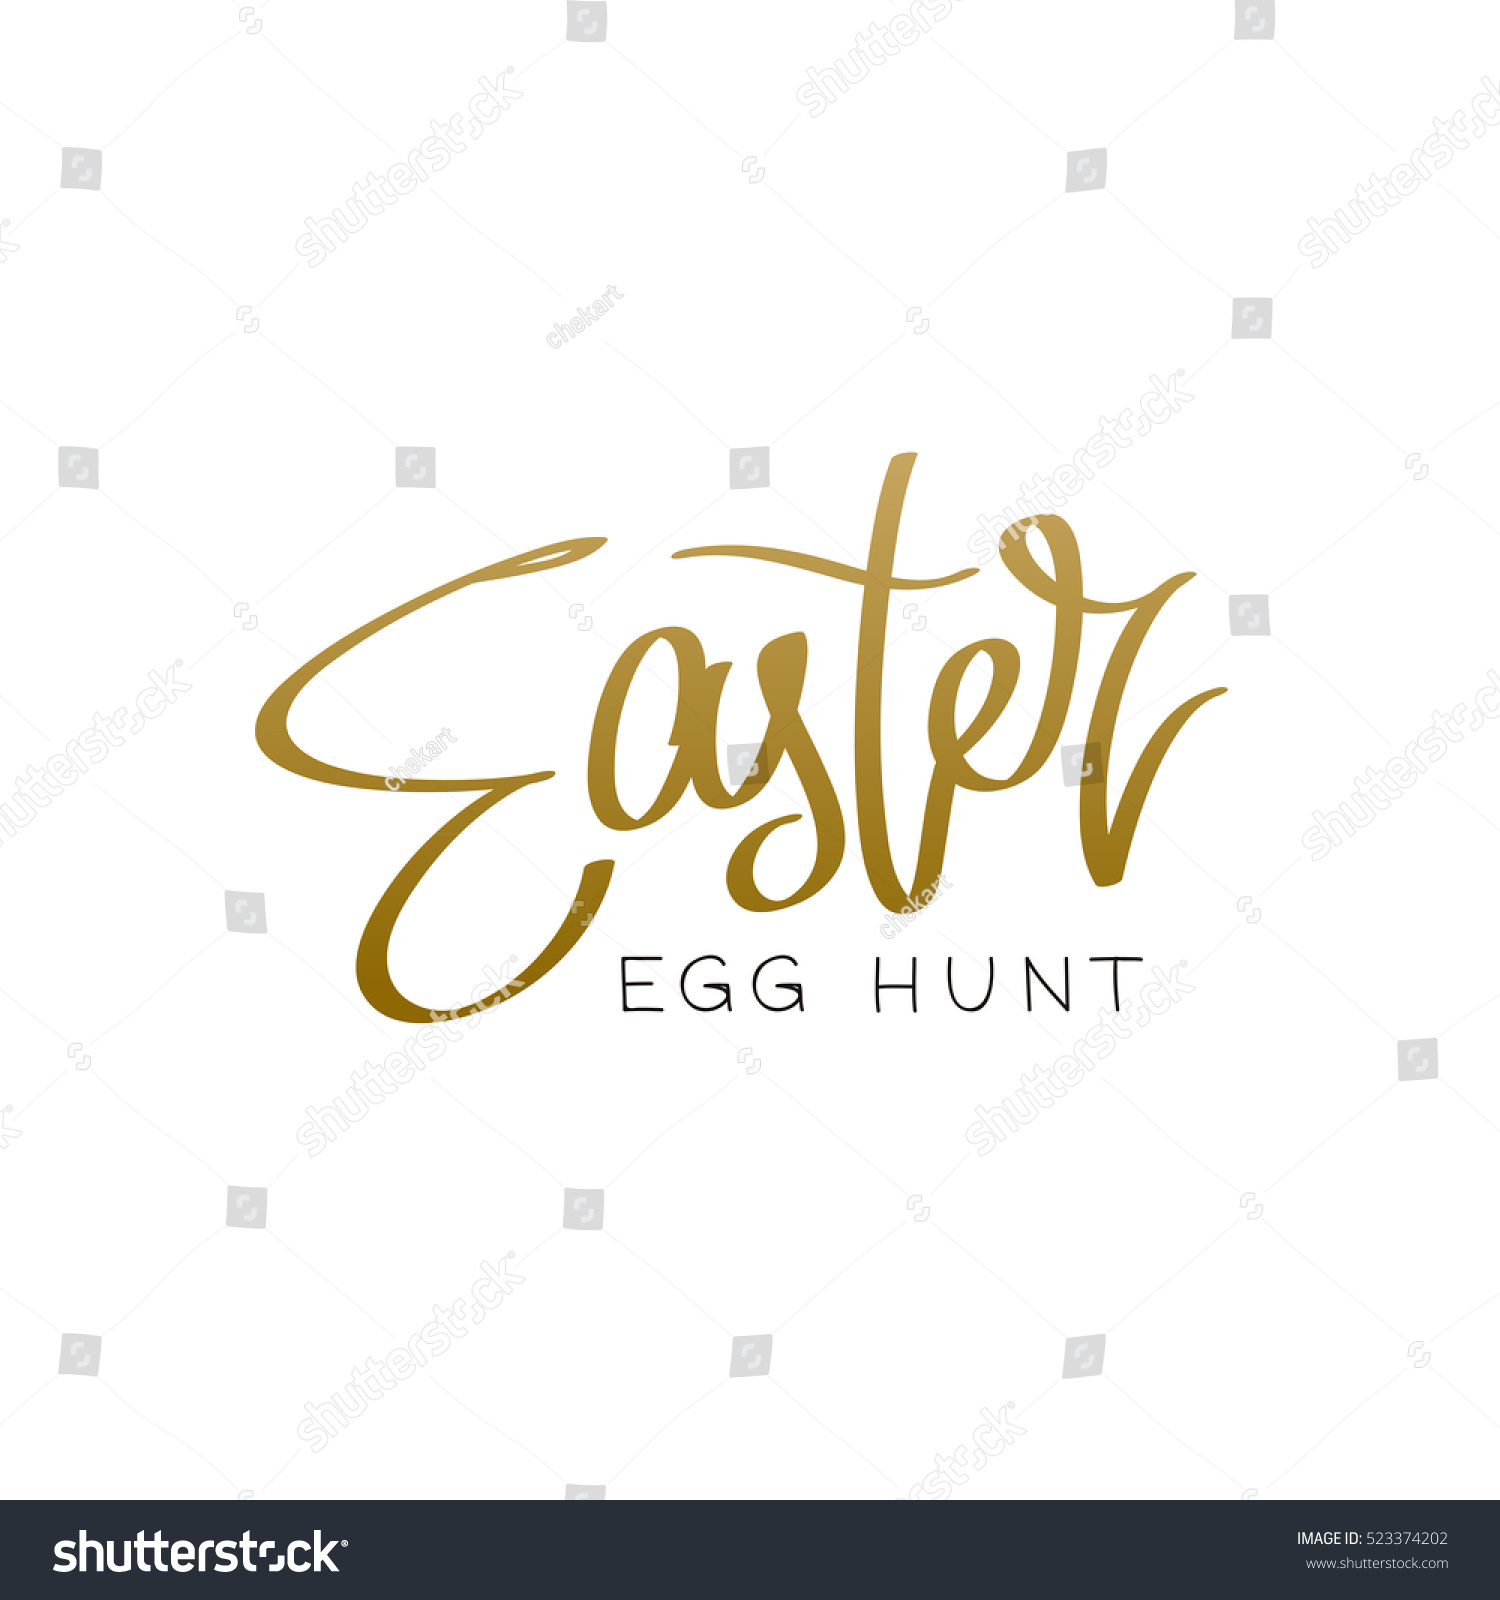 Easter egg hunt trend calligraphy vector stock vector 523374202 easter egg hunt the trend calligraphy vector illustration on white background great negle Image collections